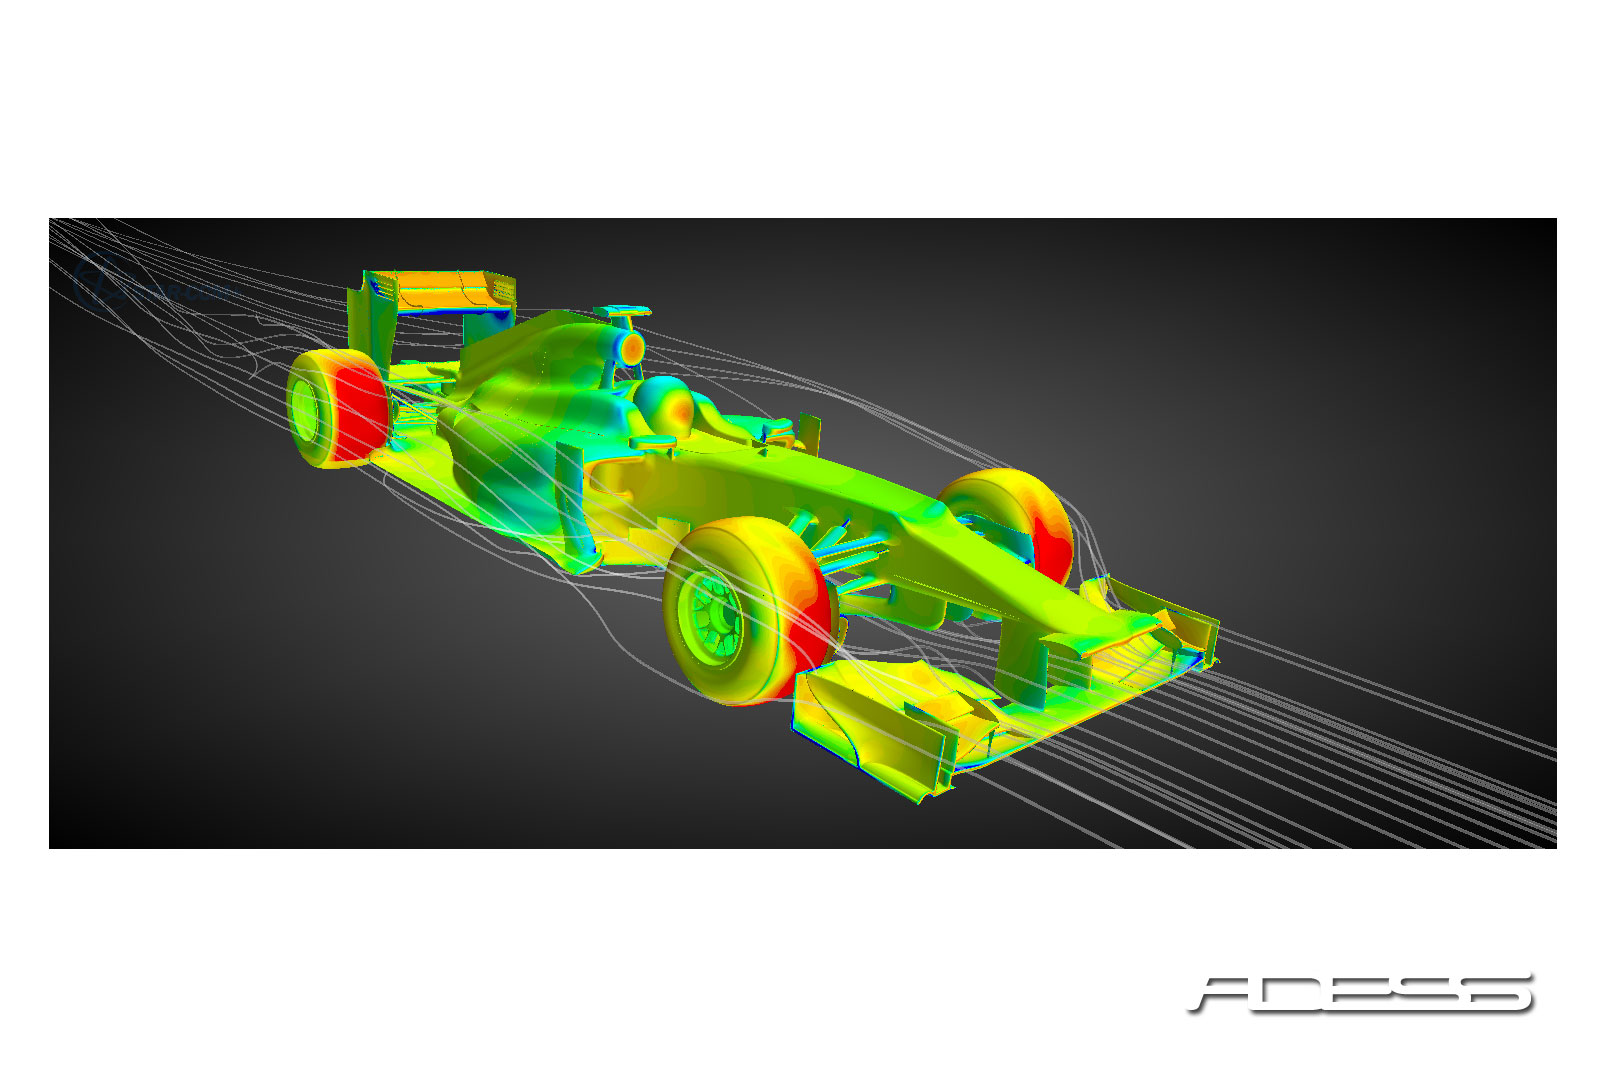 Pressure field and streamlines over a Formula 1 car